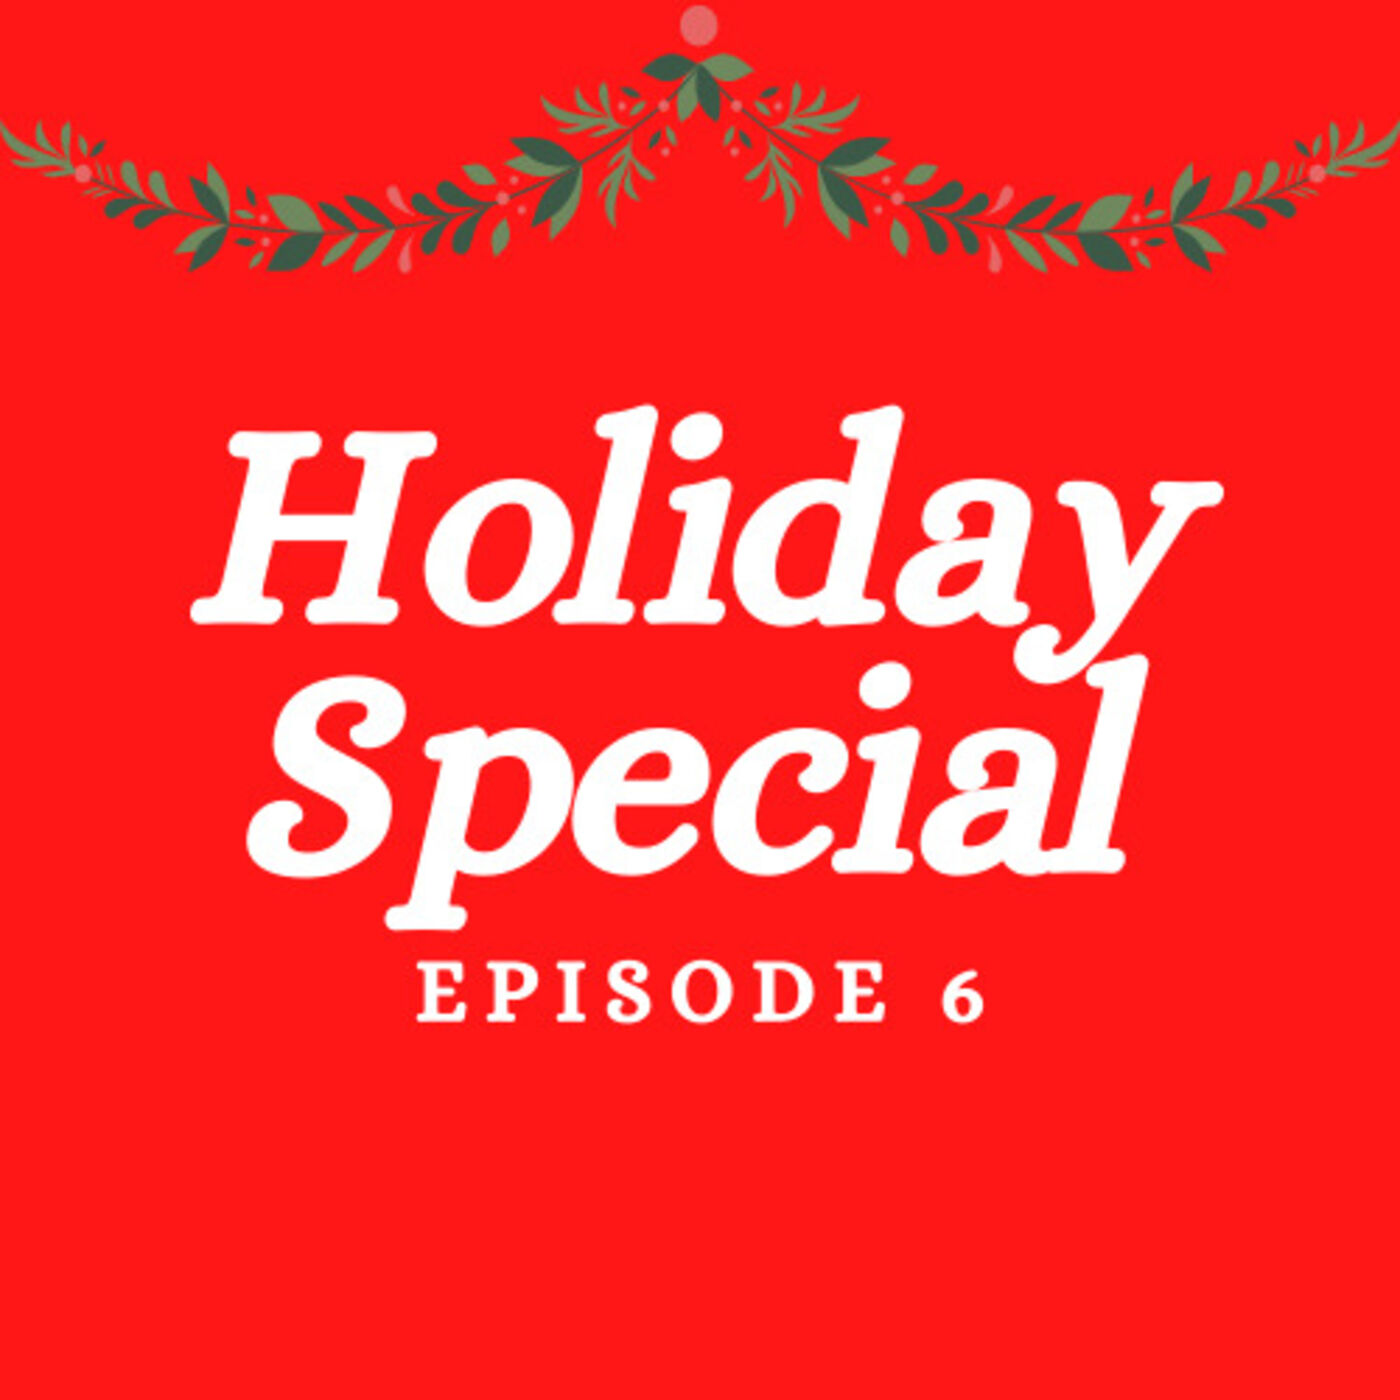 Episode 6 - Holiday Special